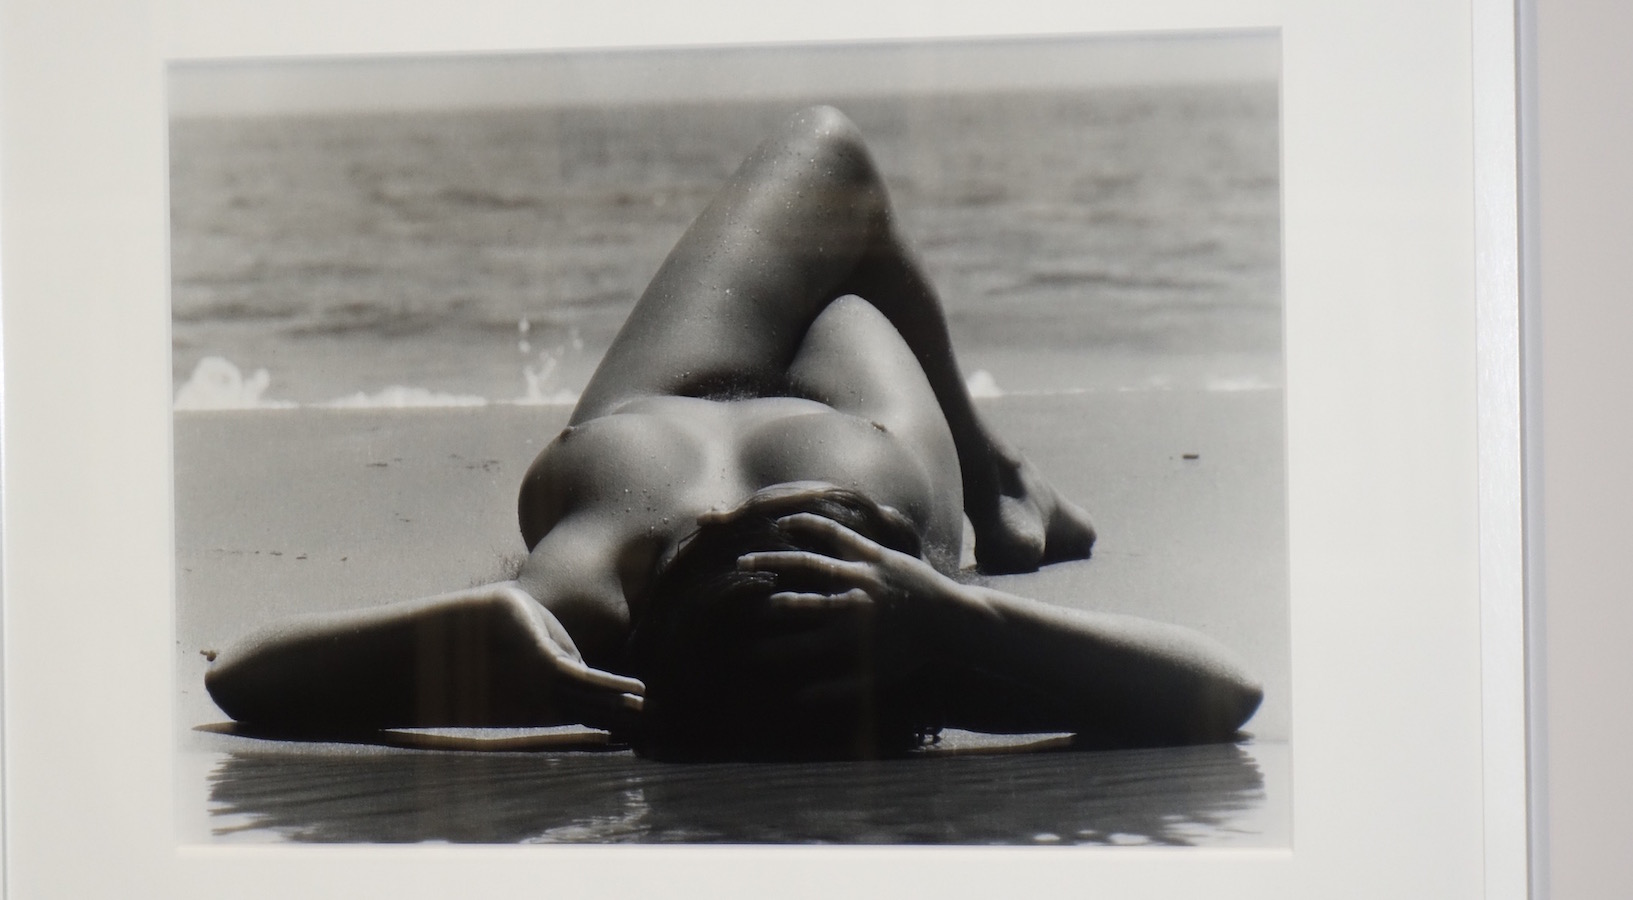 Lucien Clergue: An Oral History Revisited.